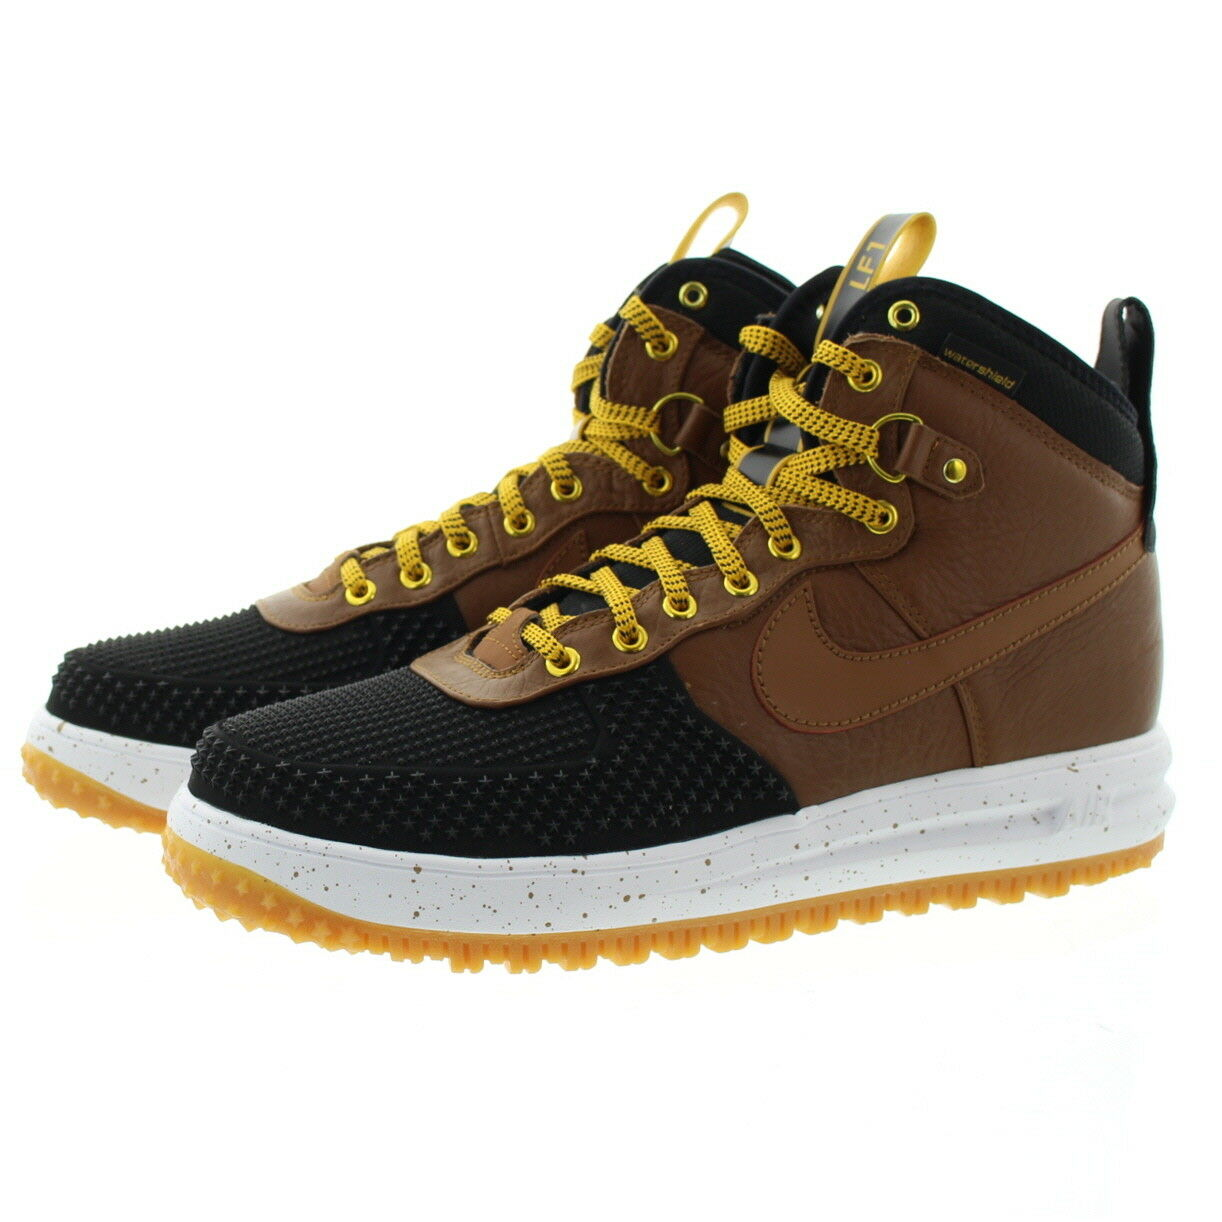 188a85c6ef241 ... Nike 805899 Mens Lunar Force 1 1 1 High Top Water Shield Duckboot Shoe  Boots 3ca432 ...